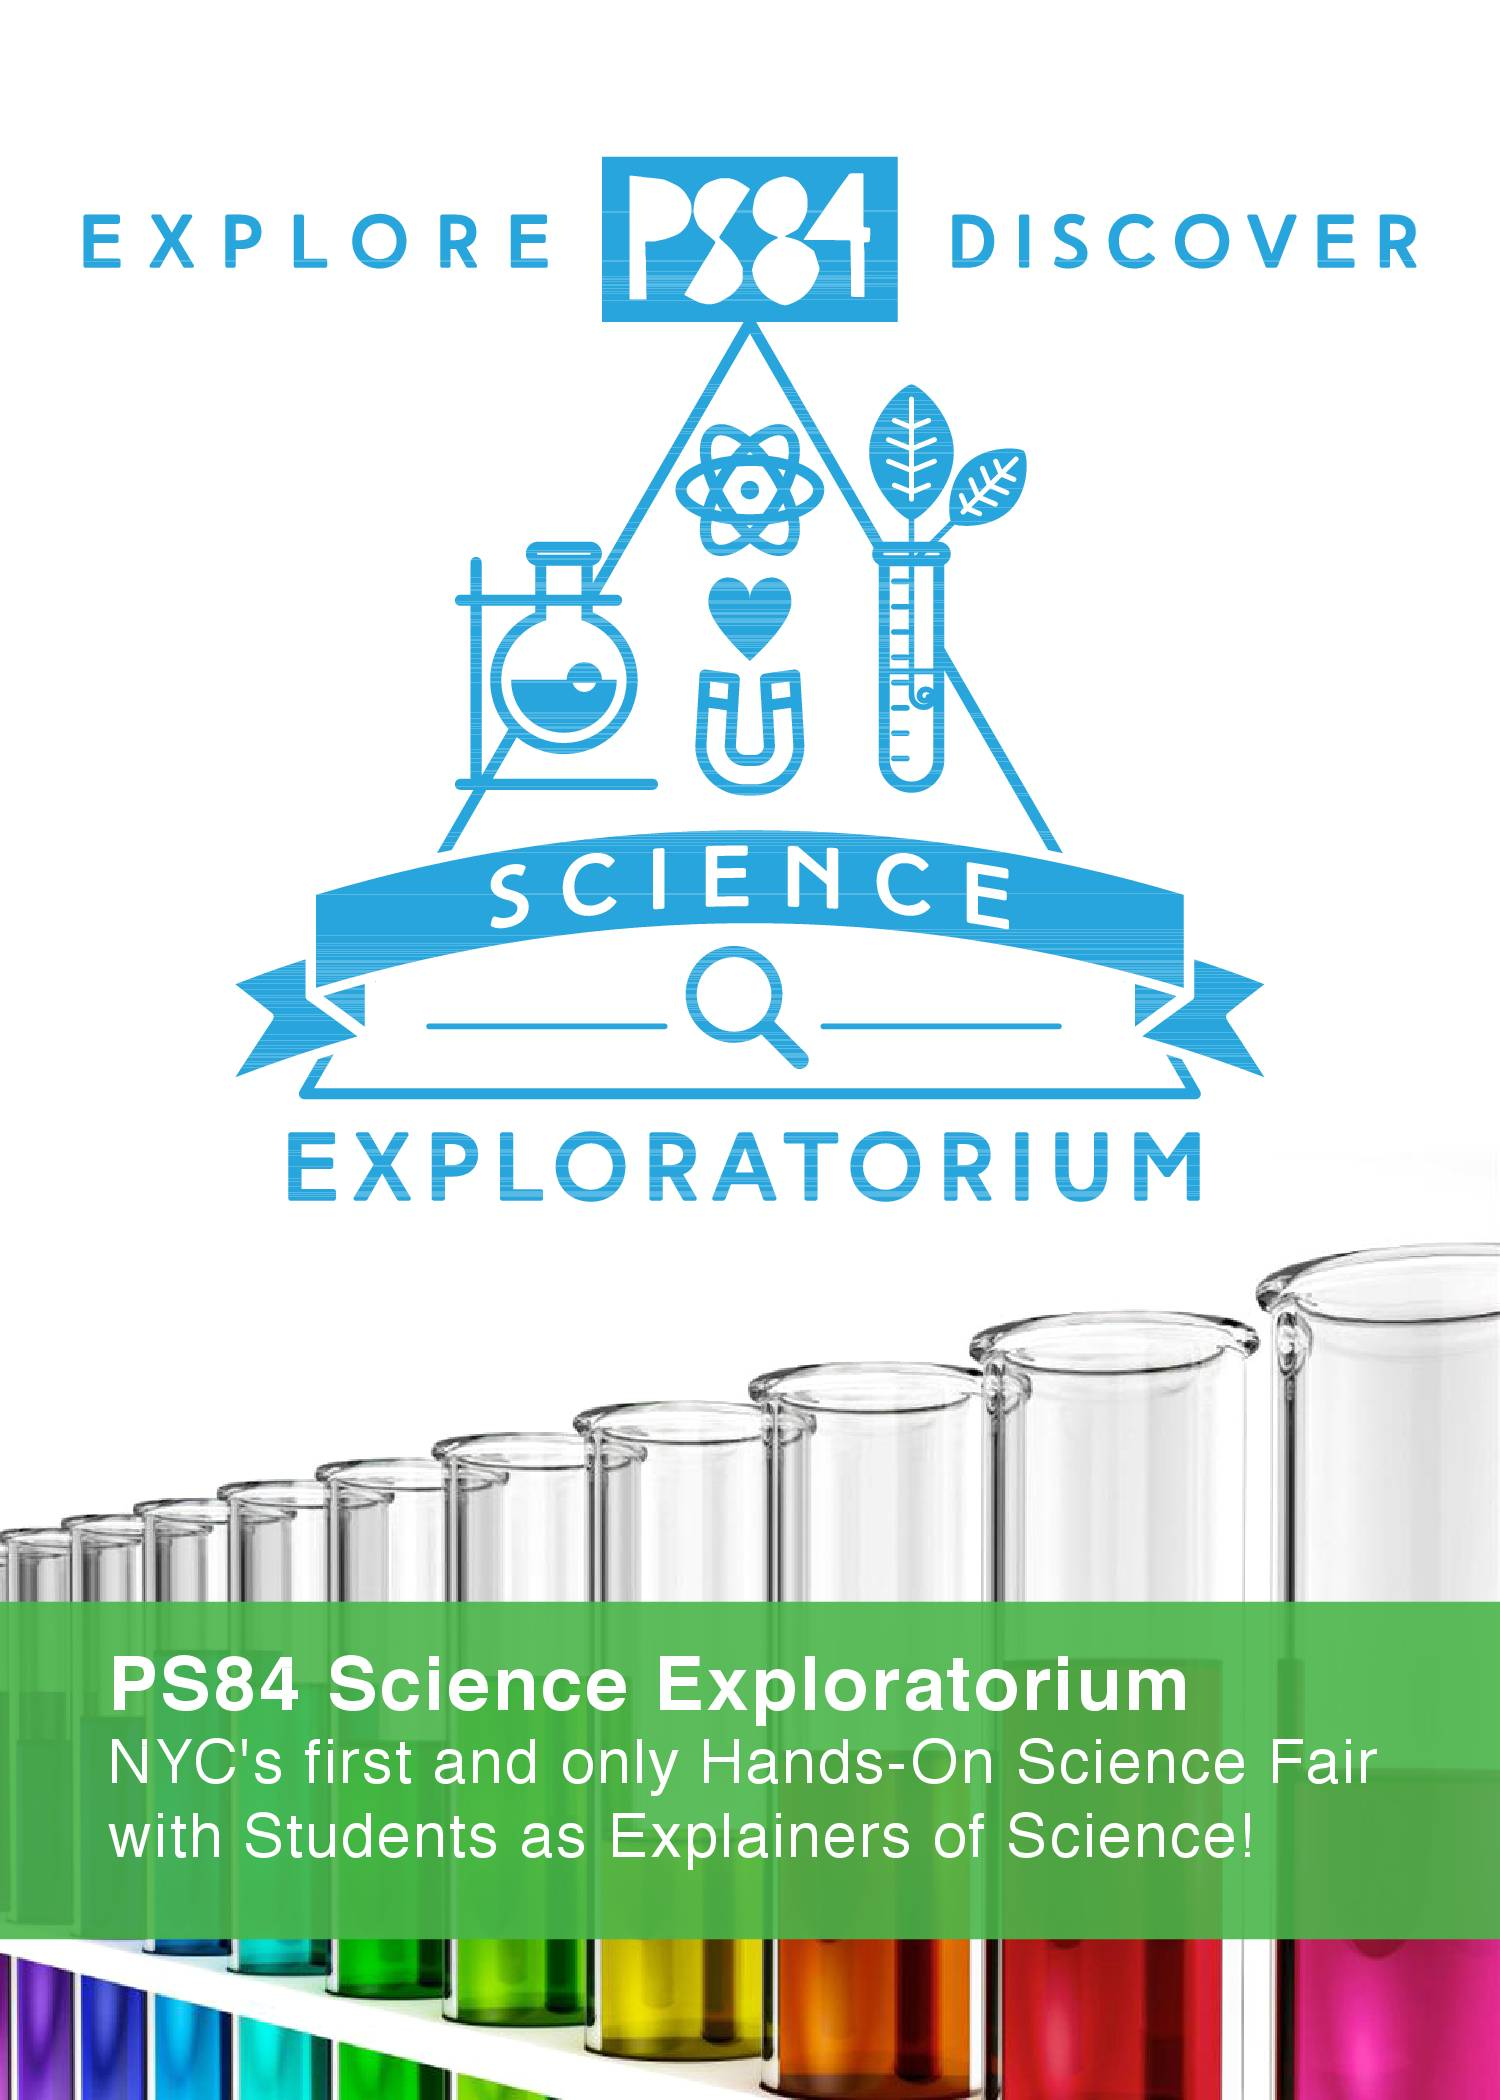 ps84 exploratorium.jpg